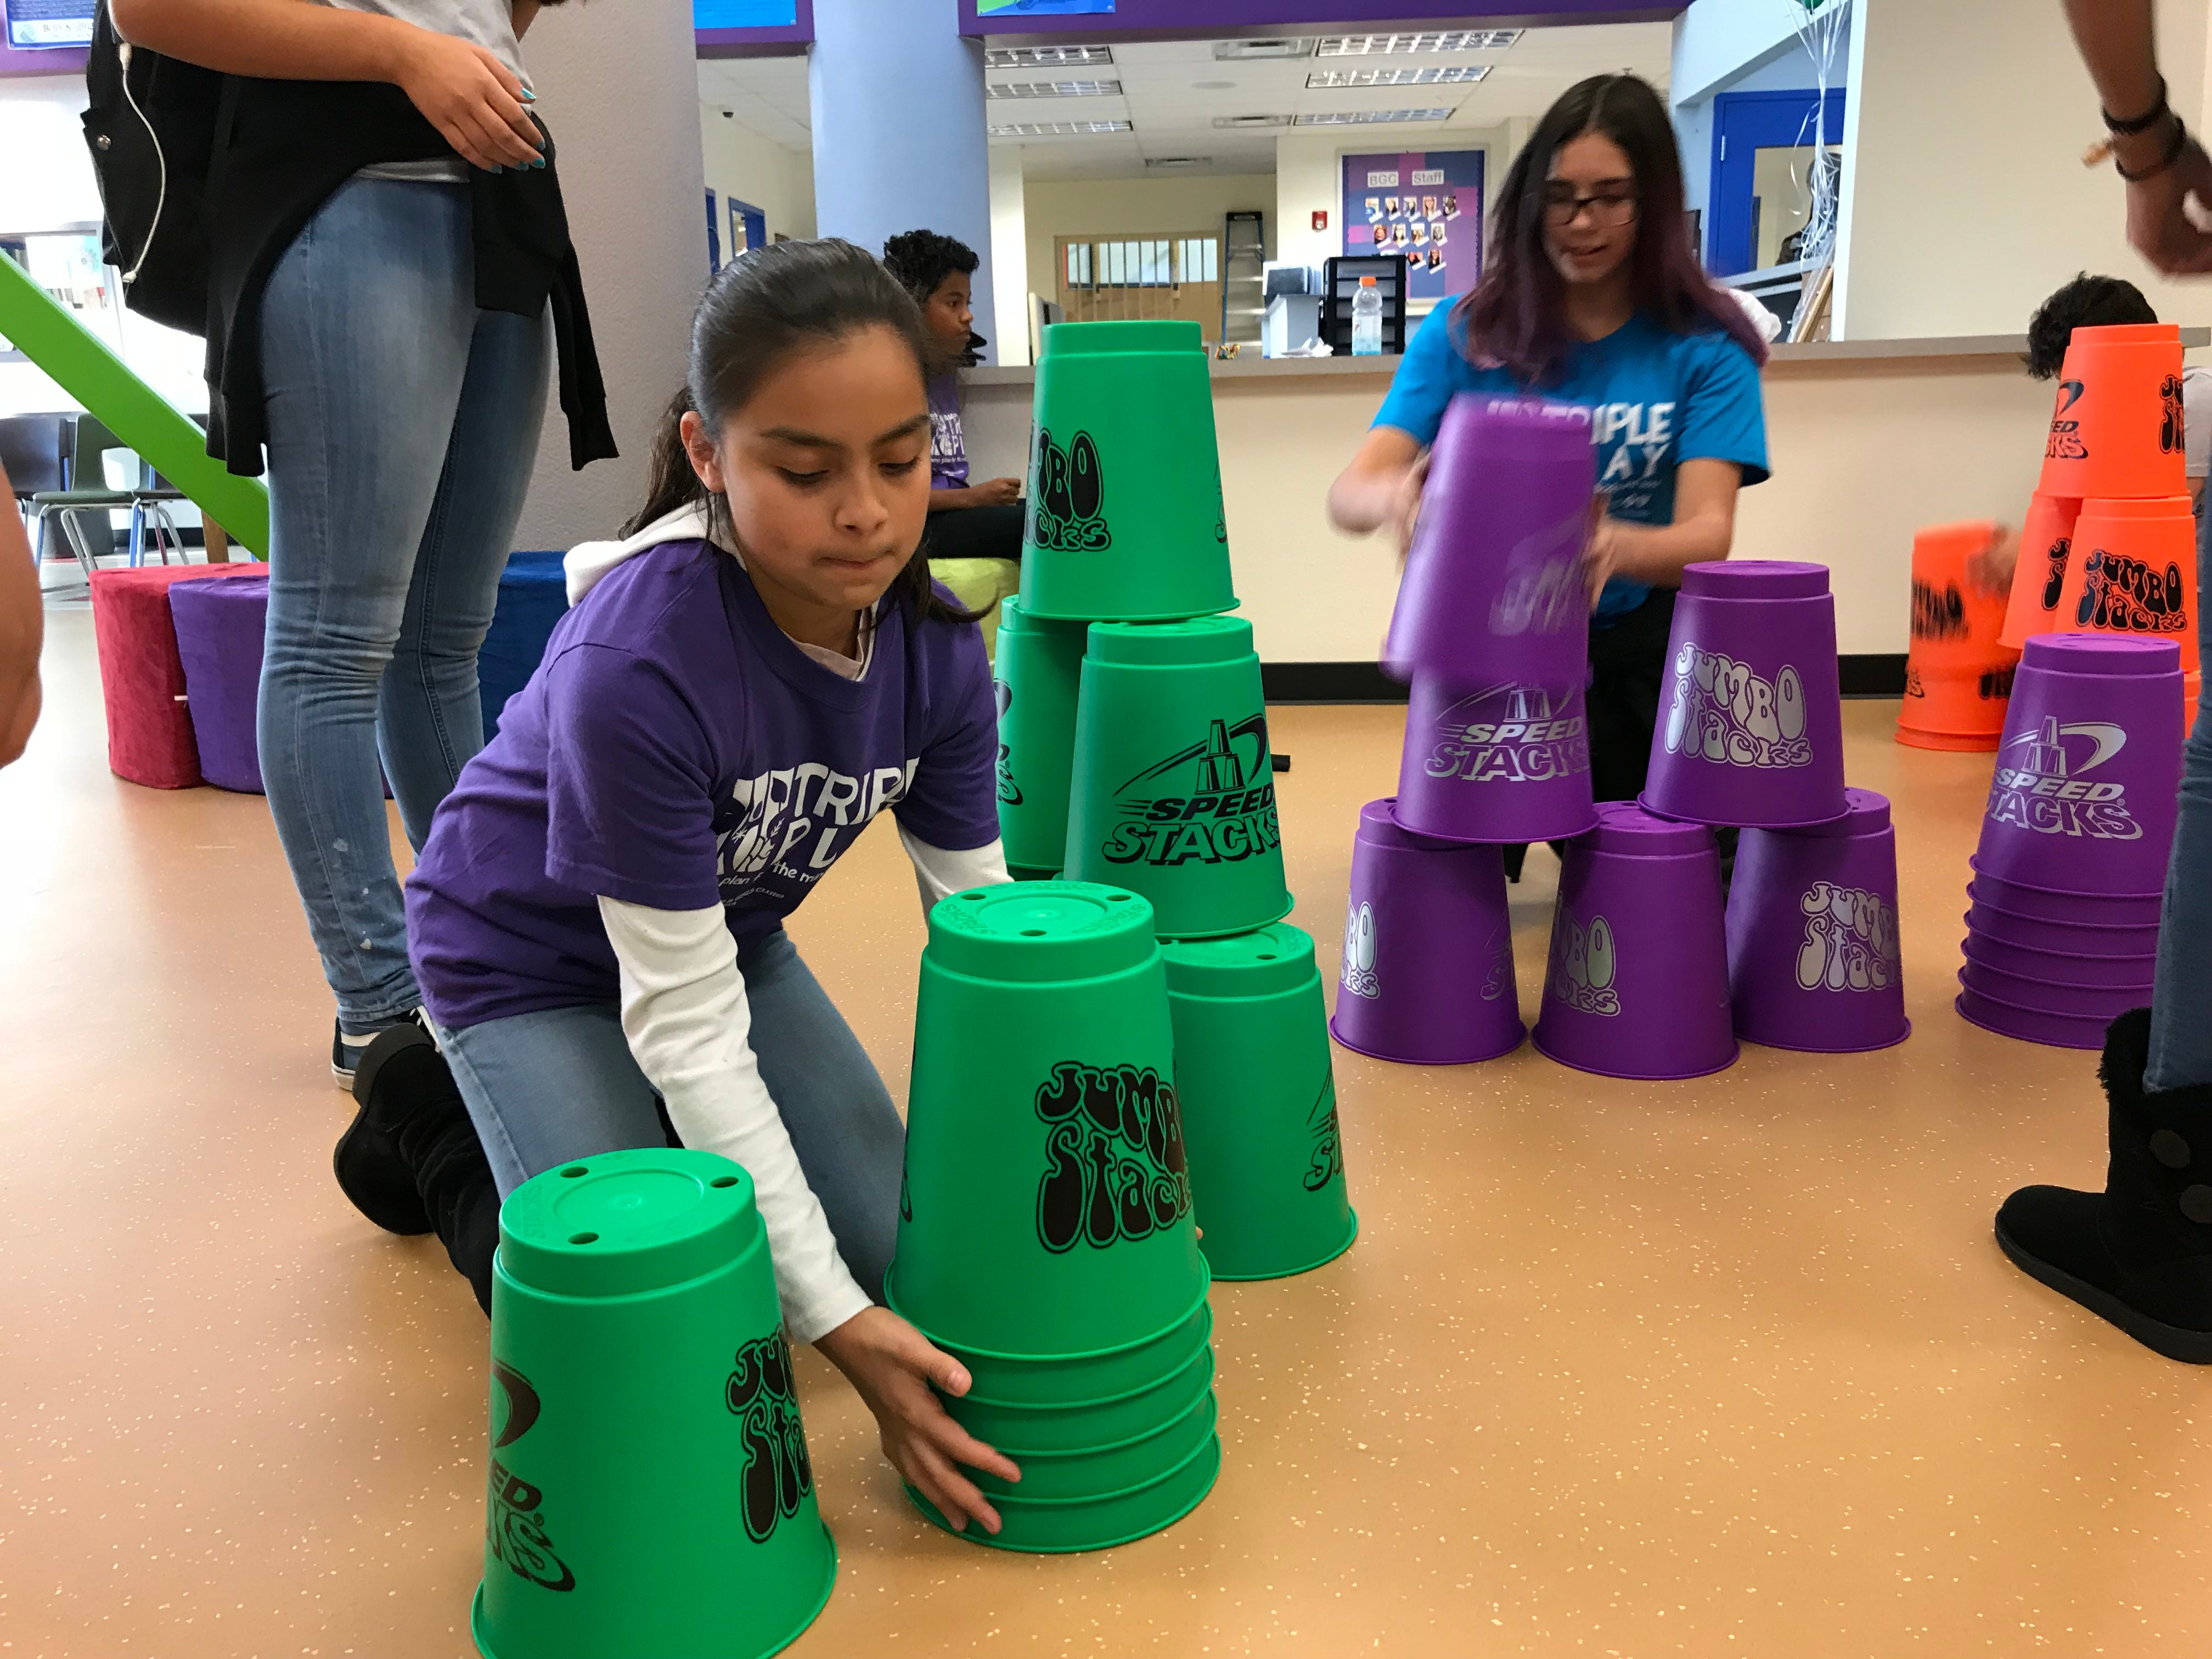 Boys & Girls Club of Larimer County in Wellington gets new building thanks to $500K gift